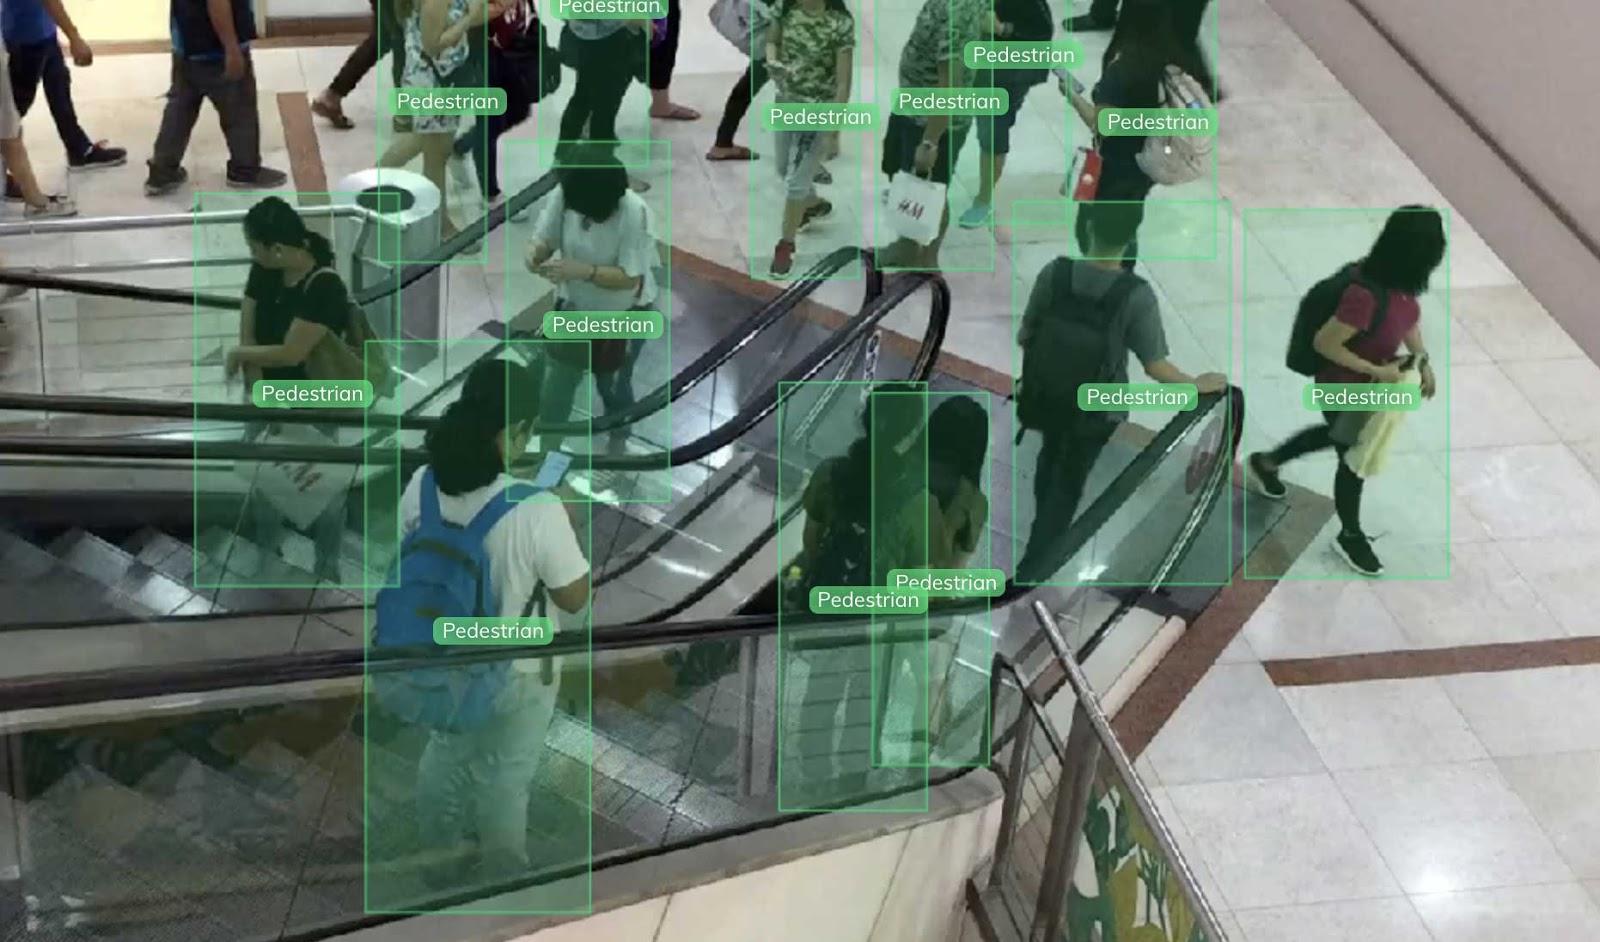 Pedestrian detection in a mall using V7